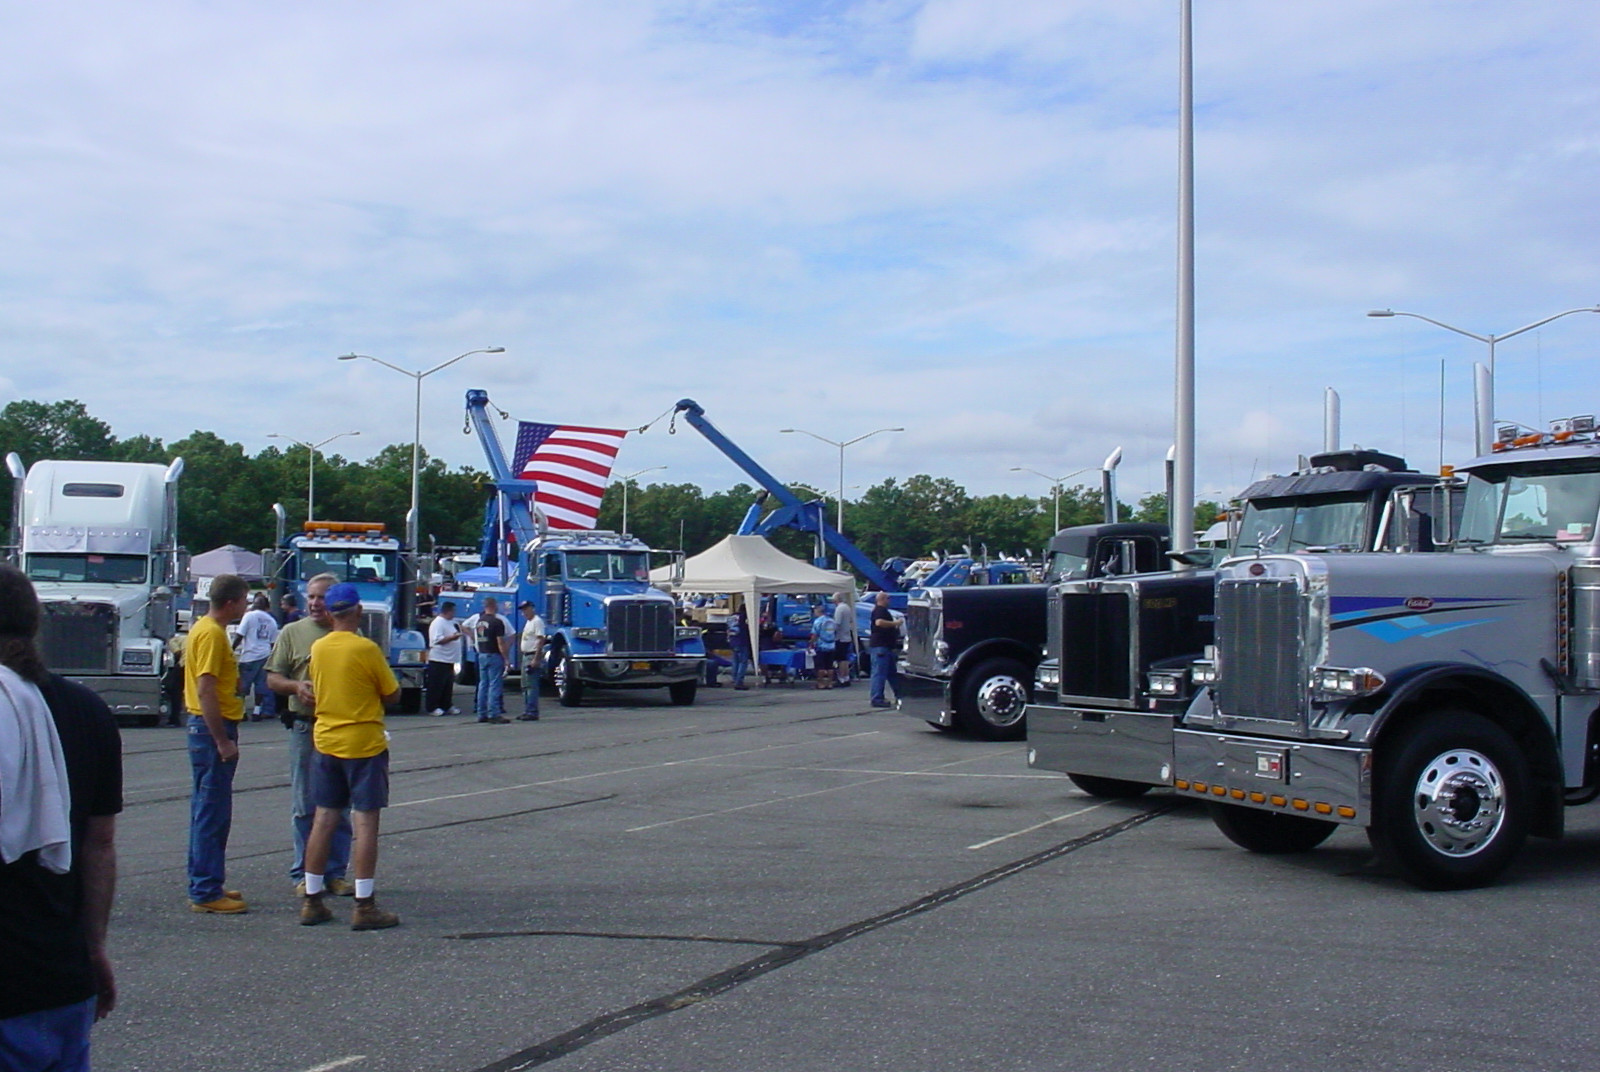 Big rigs on display at MacArthur Airport in Ronkonkoma